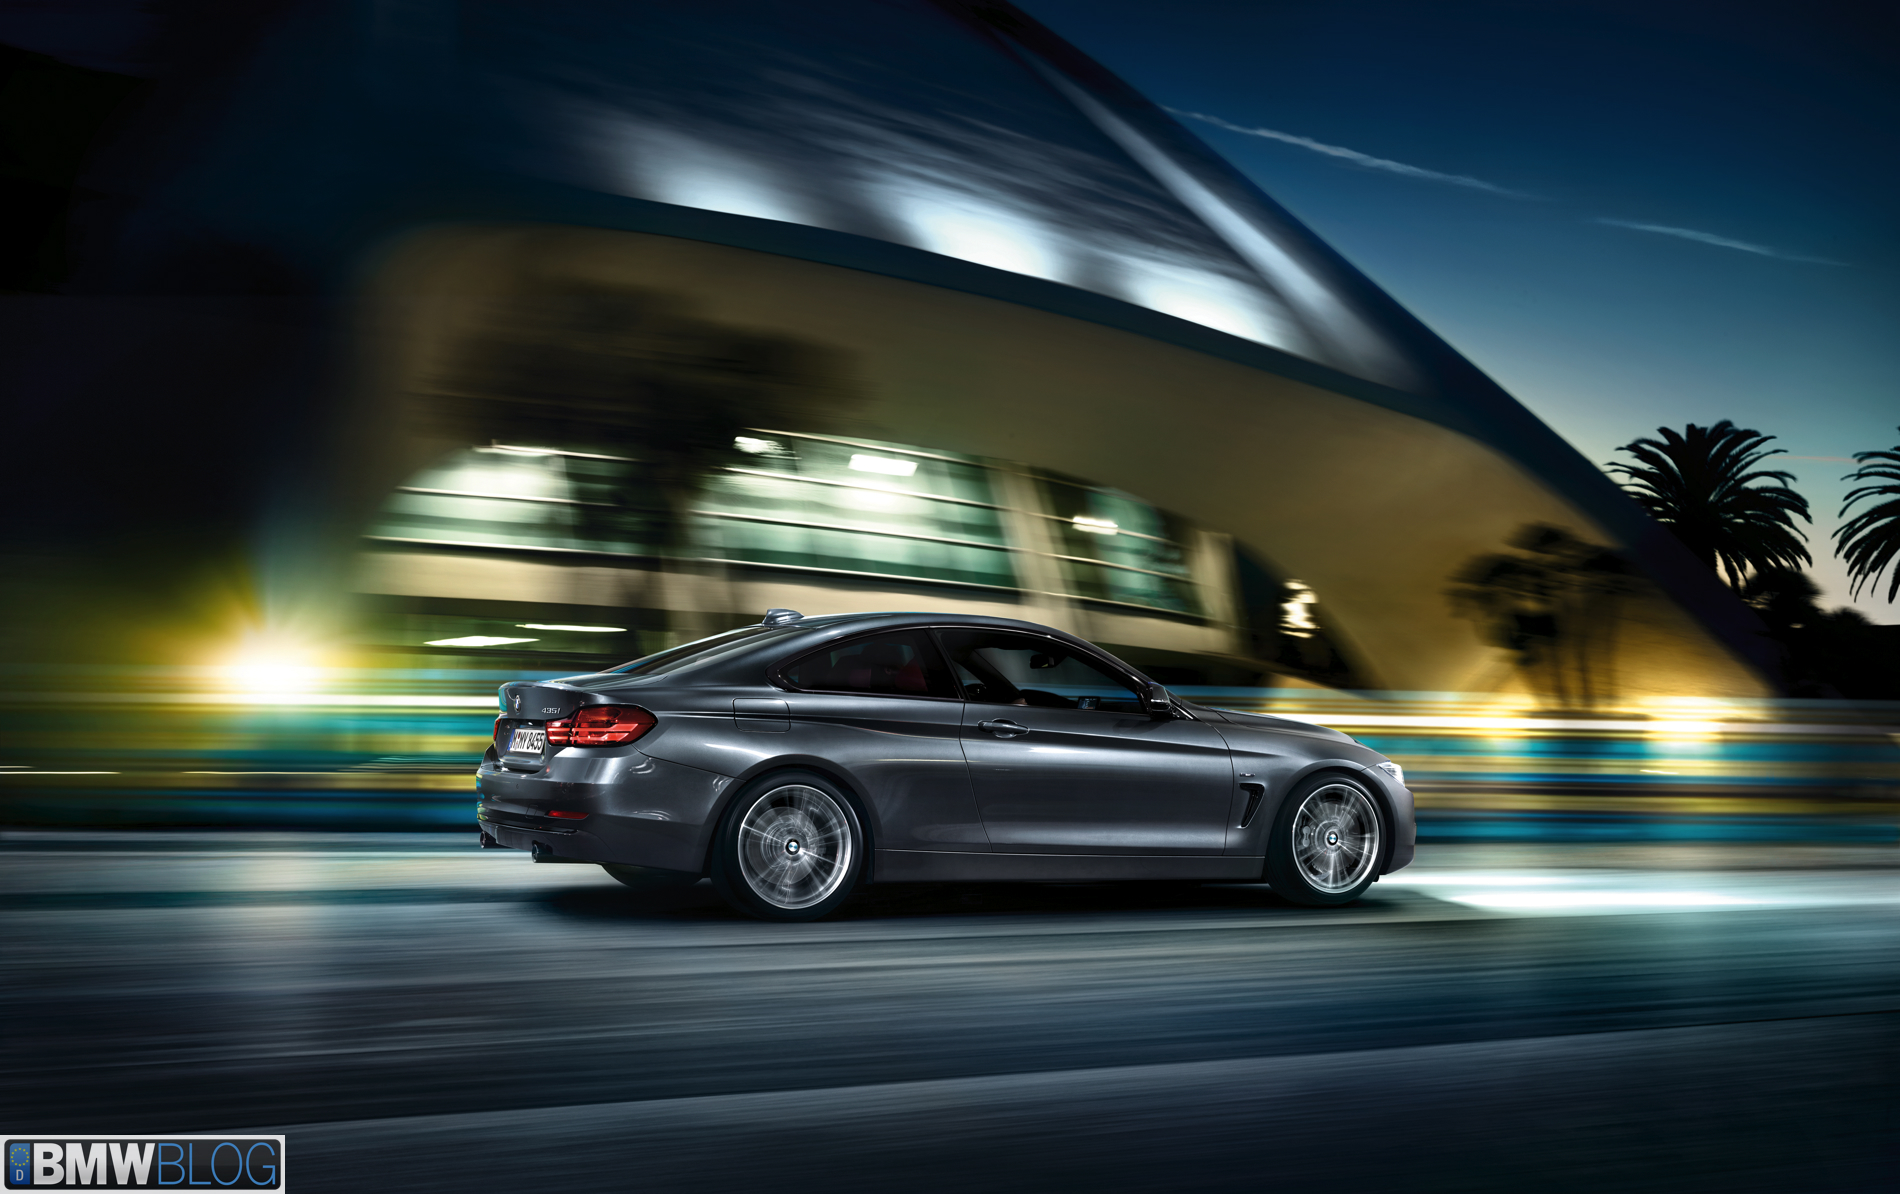 bmw 4 series coupe images 21